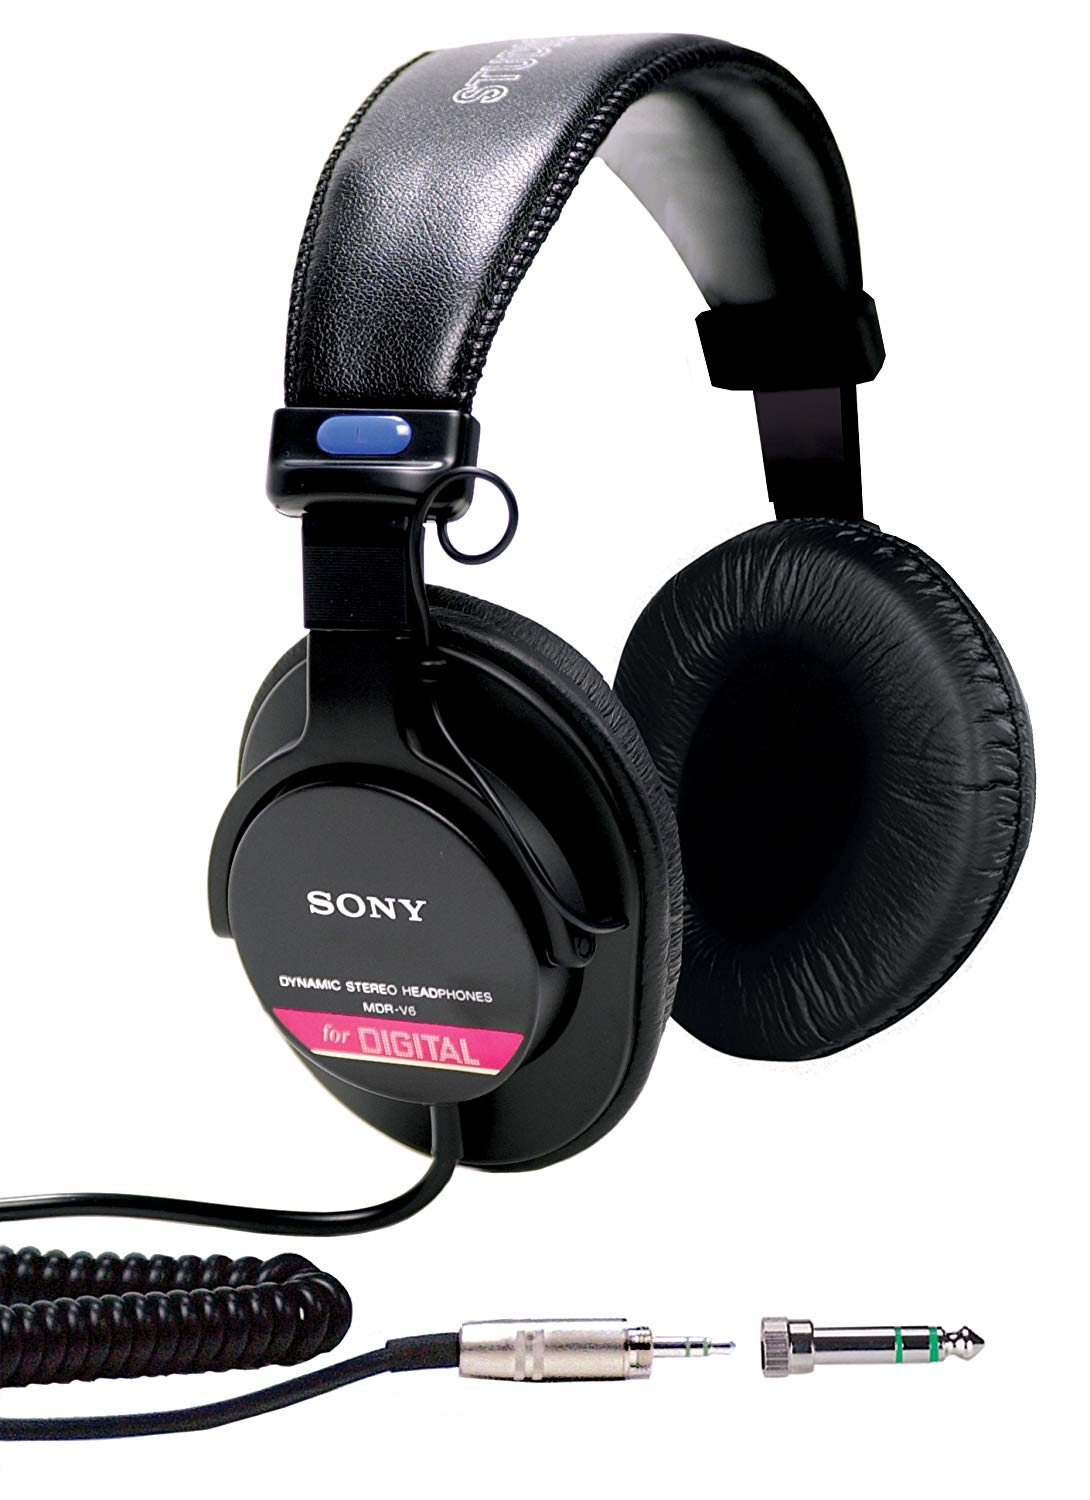 Sony MDRV6 Studio Monitor Headphones with CCAW Voice Coil -